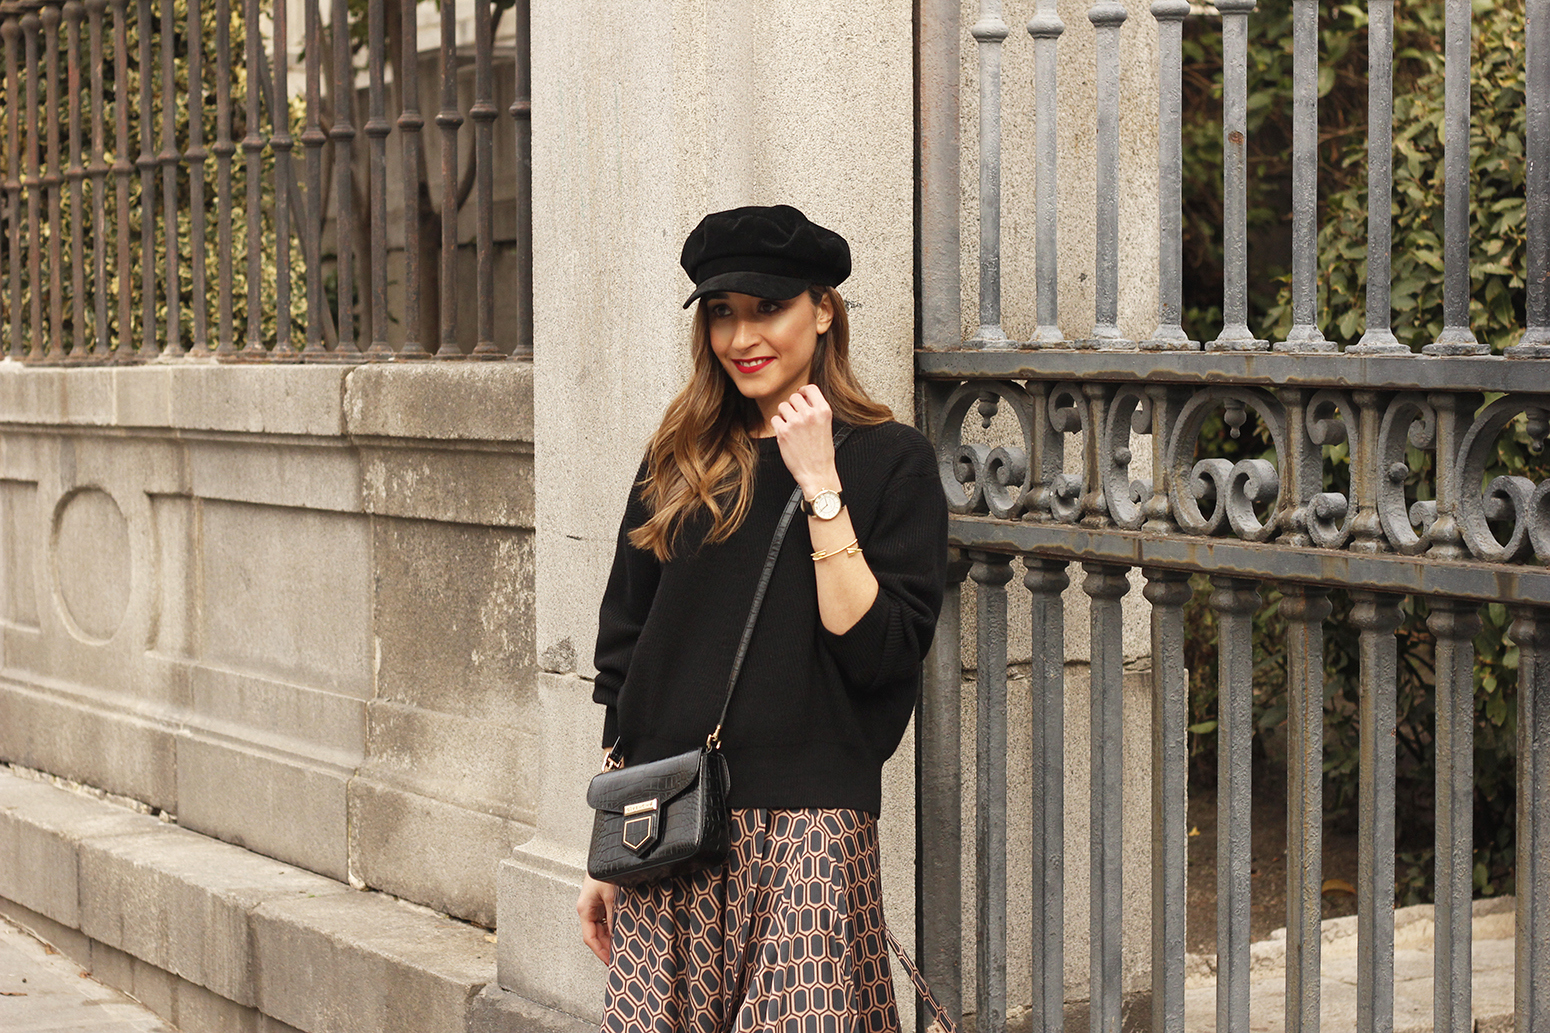 Midi skirt geometrical print marc jacobs watch over the knee boots givenchy bag winter outfit street style13